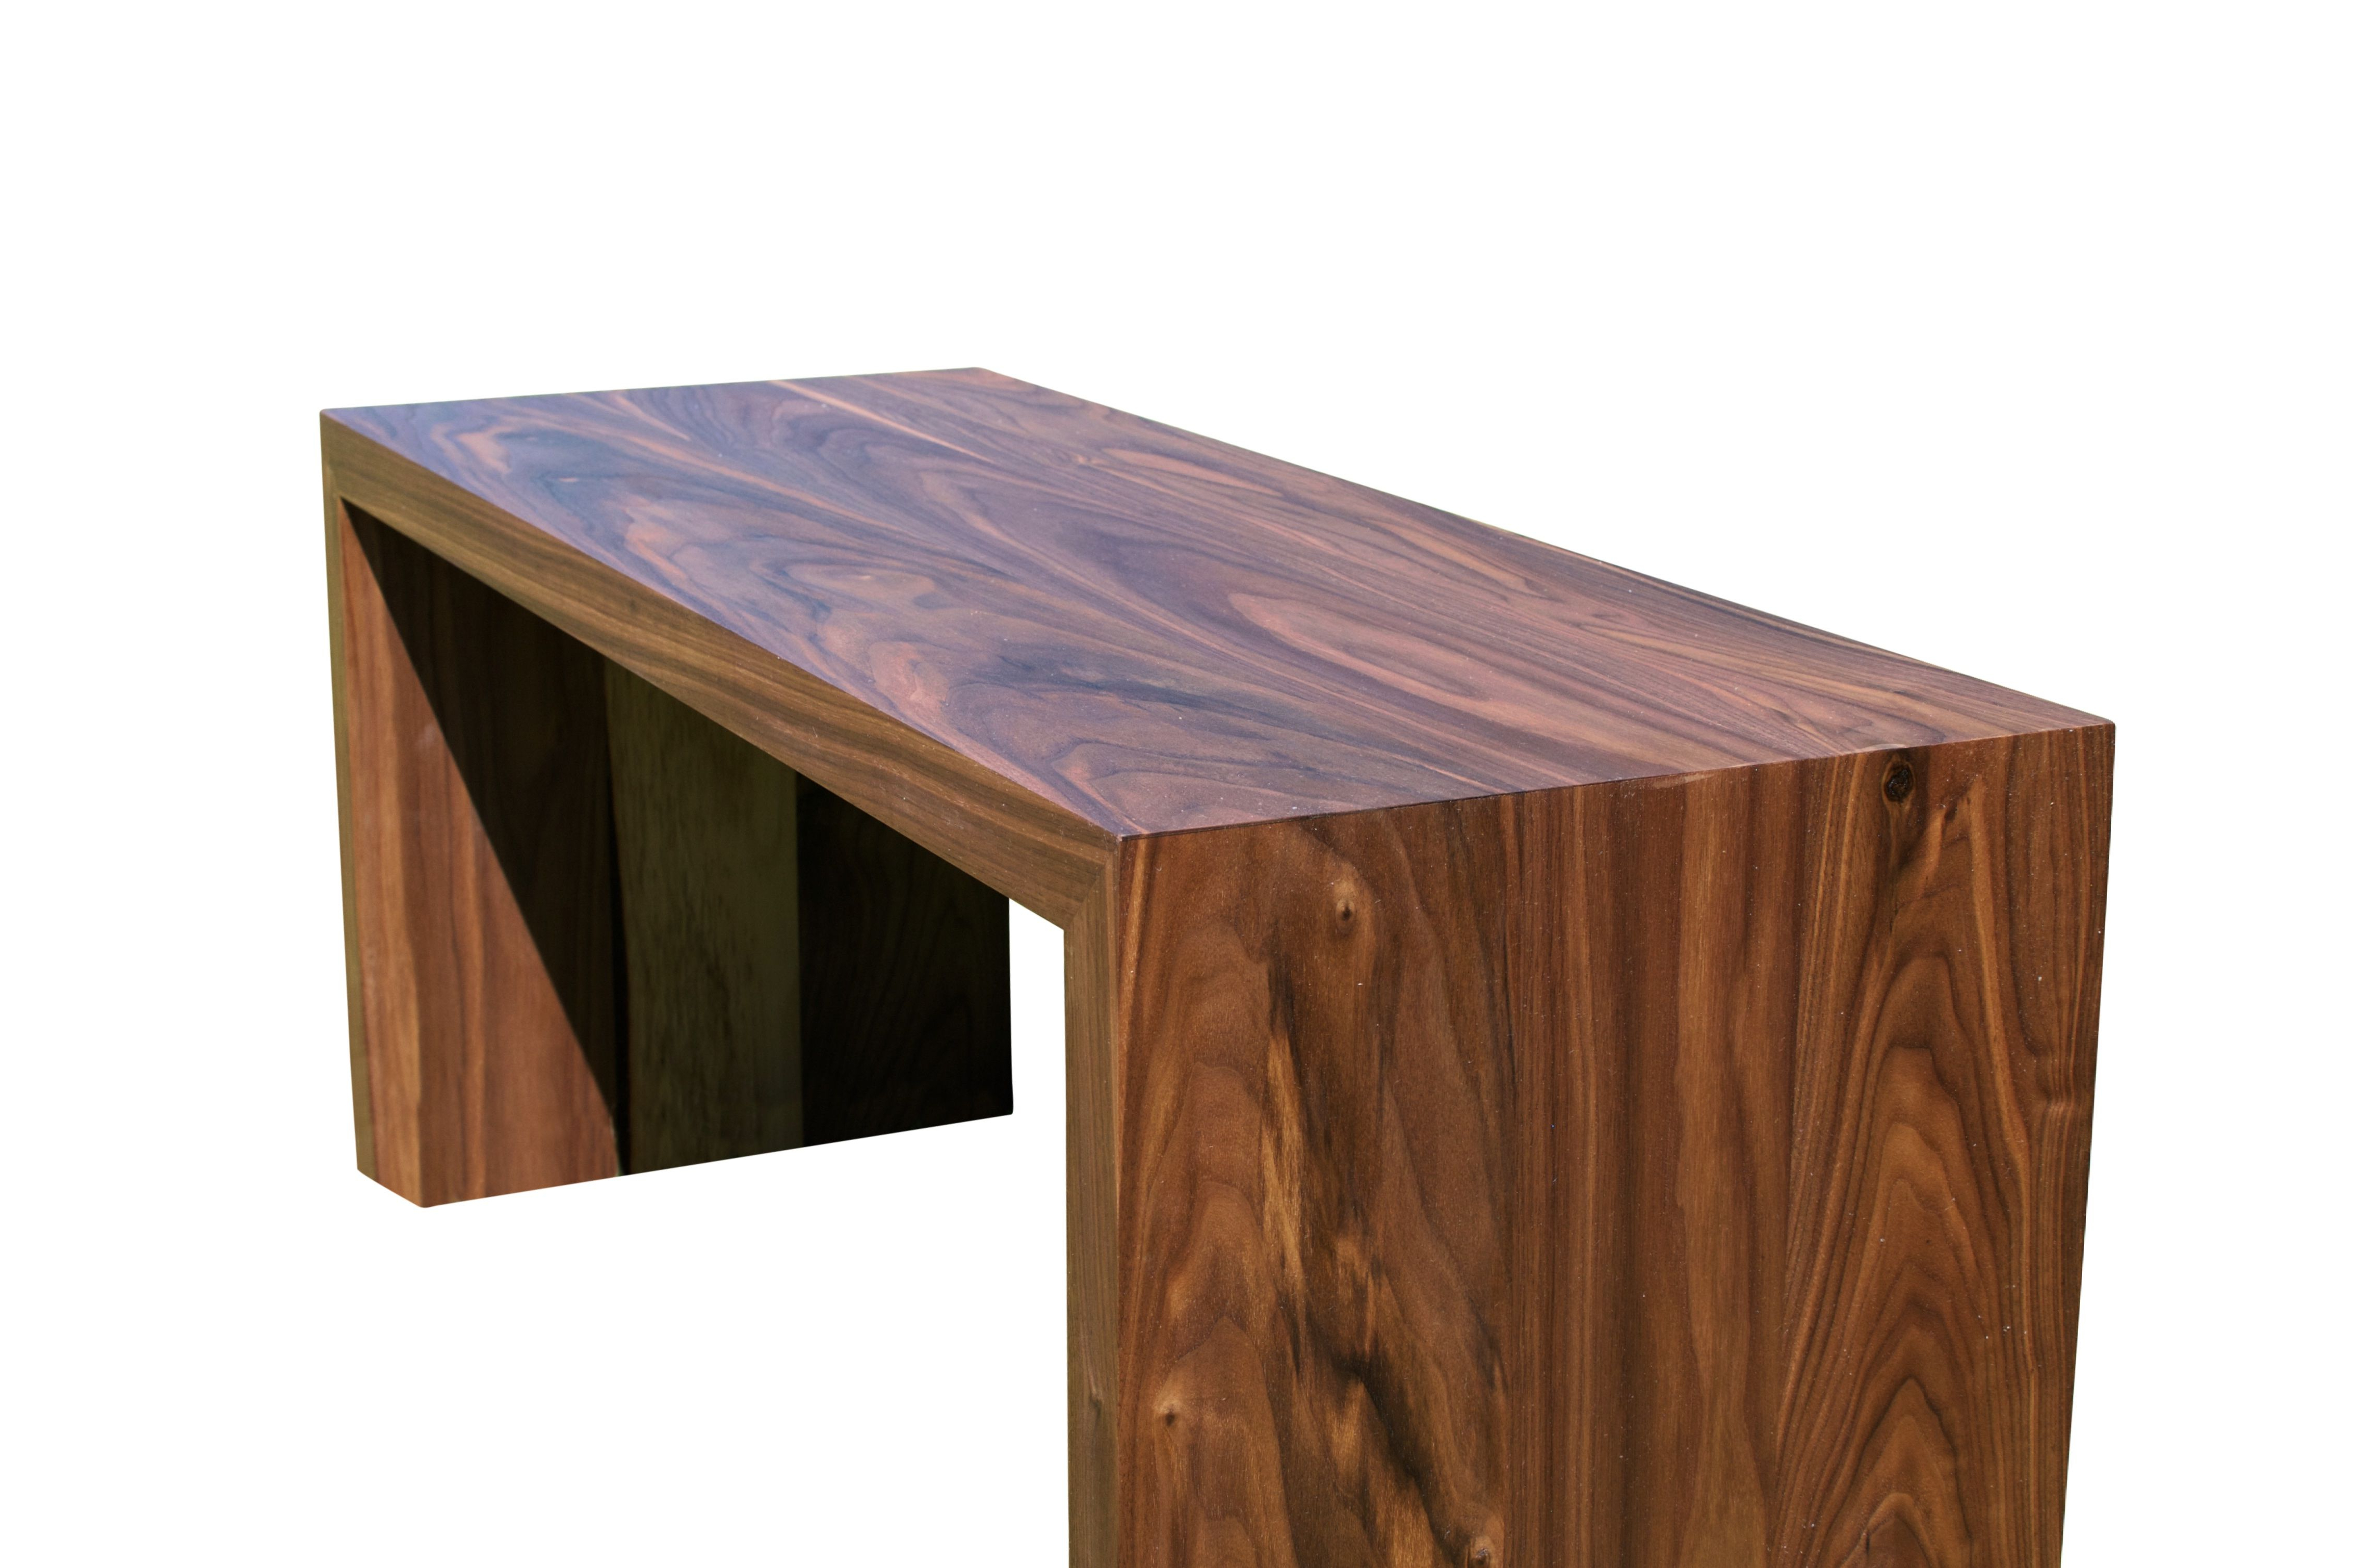 Best And Newest Waterfall Coffee Tables With Buy A Custom Walnut Waterfall Table, Made To Order From Blowing Rock (Gallery 8 of 20)